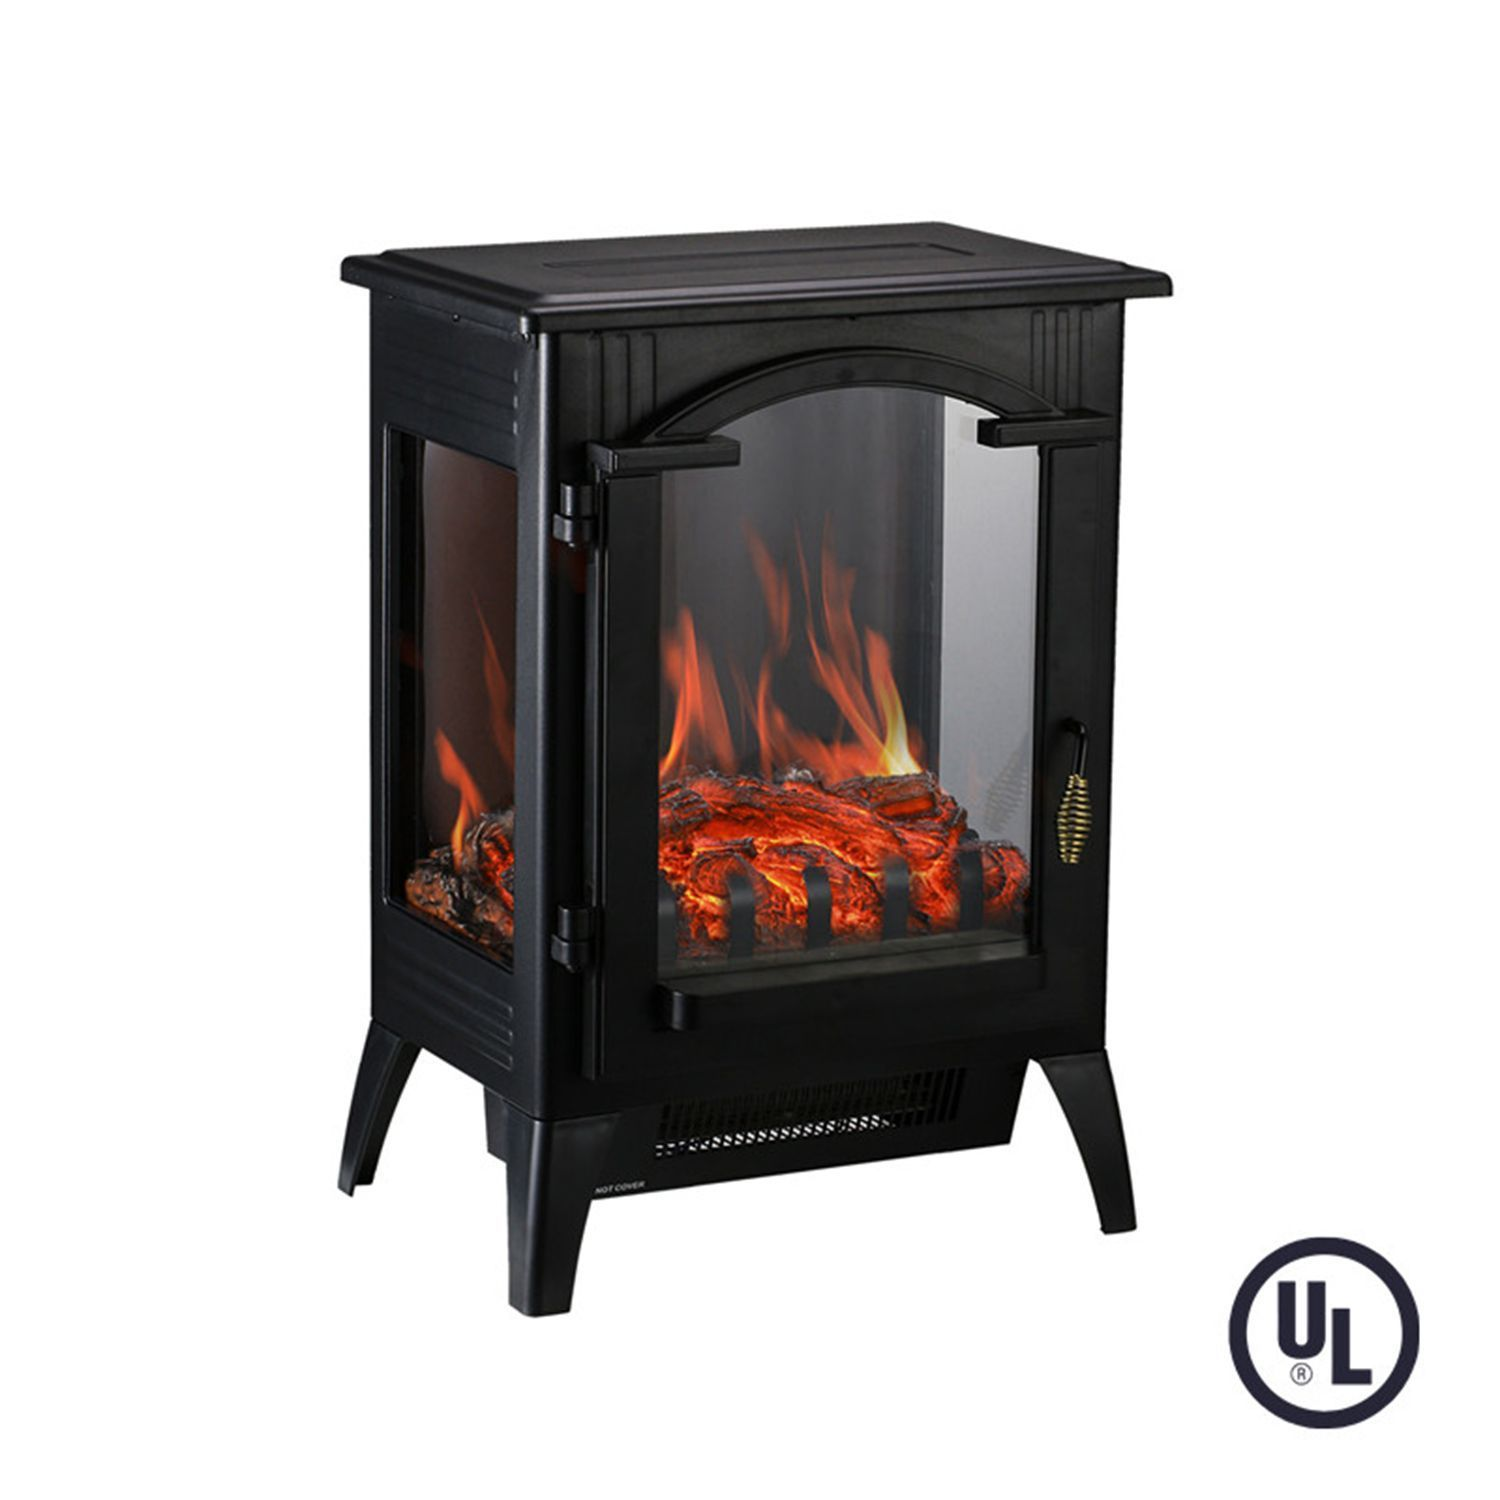 Portable Indoor Home Compact Electric Wood Stove Fireplace Heater With Thermostat For Office In 2020 With Images Electric Wood Stove Freestanding Fireplace Wood Stove Fireplace